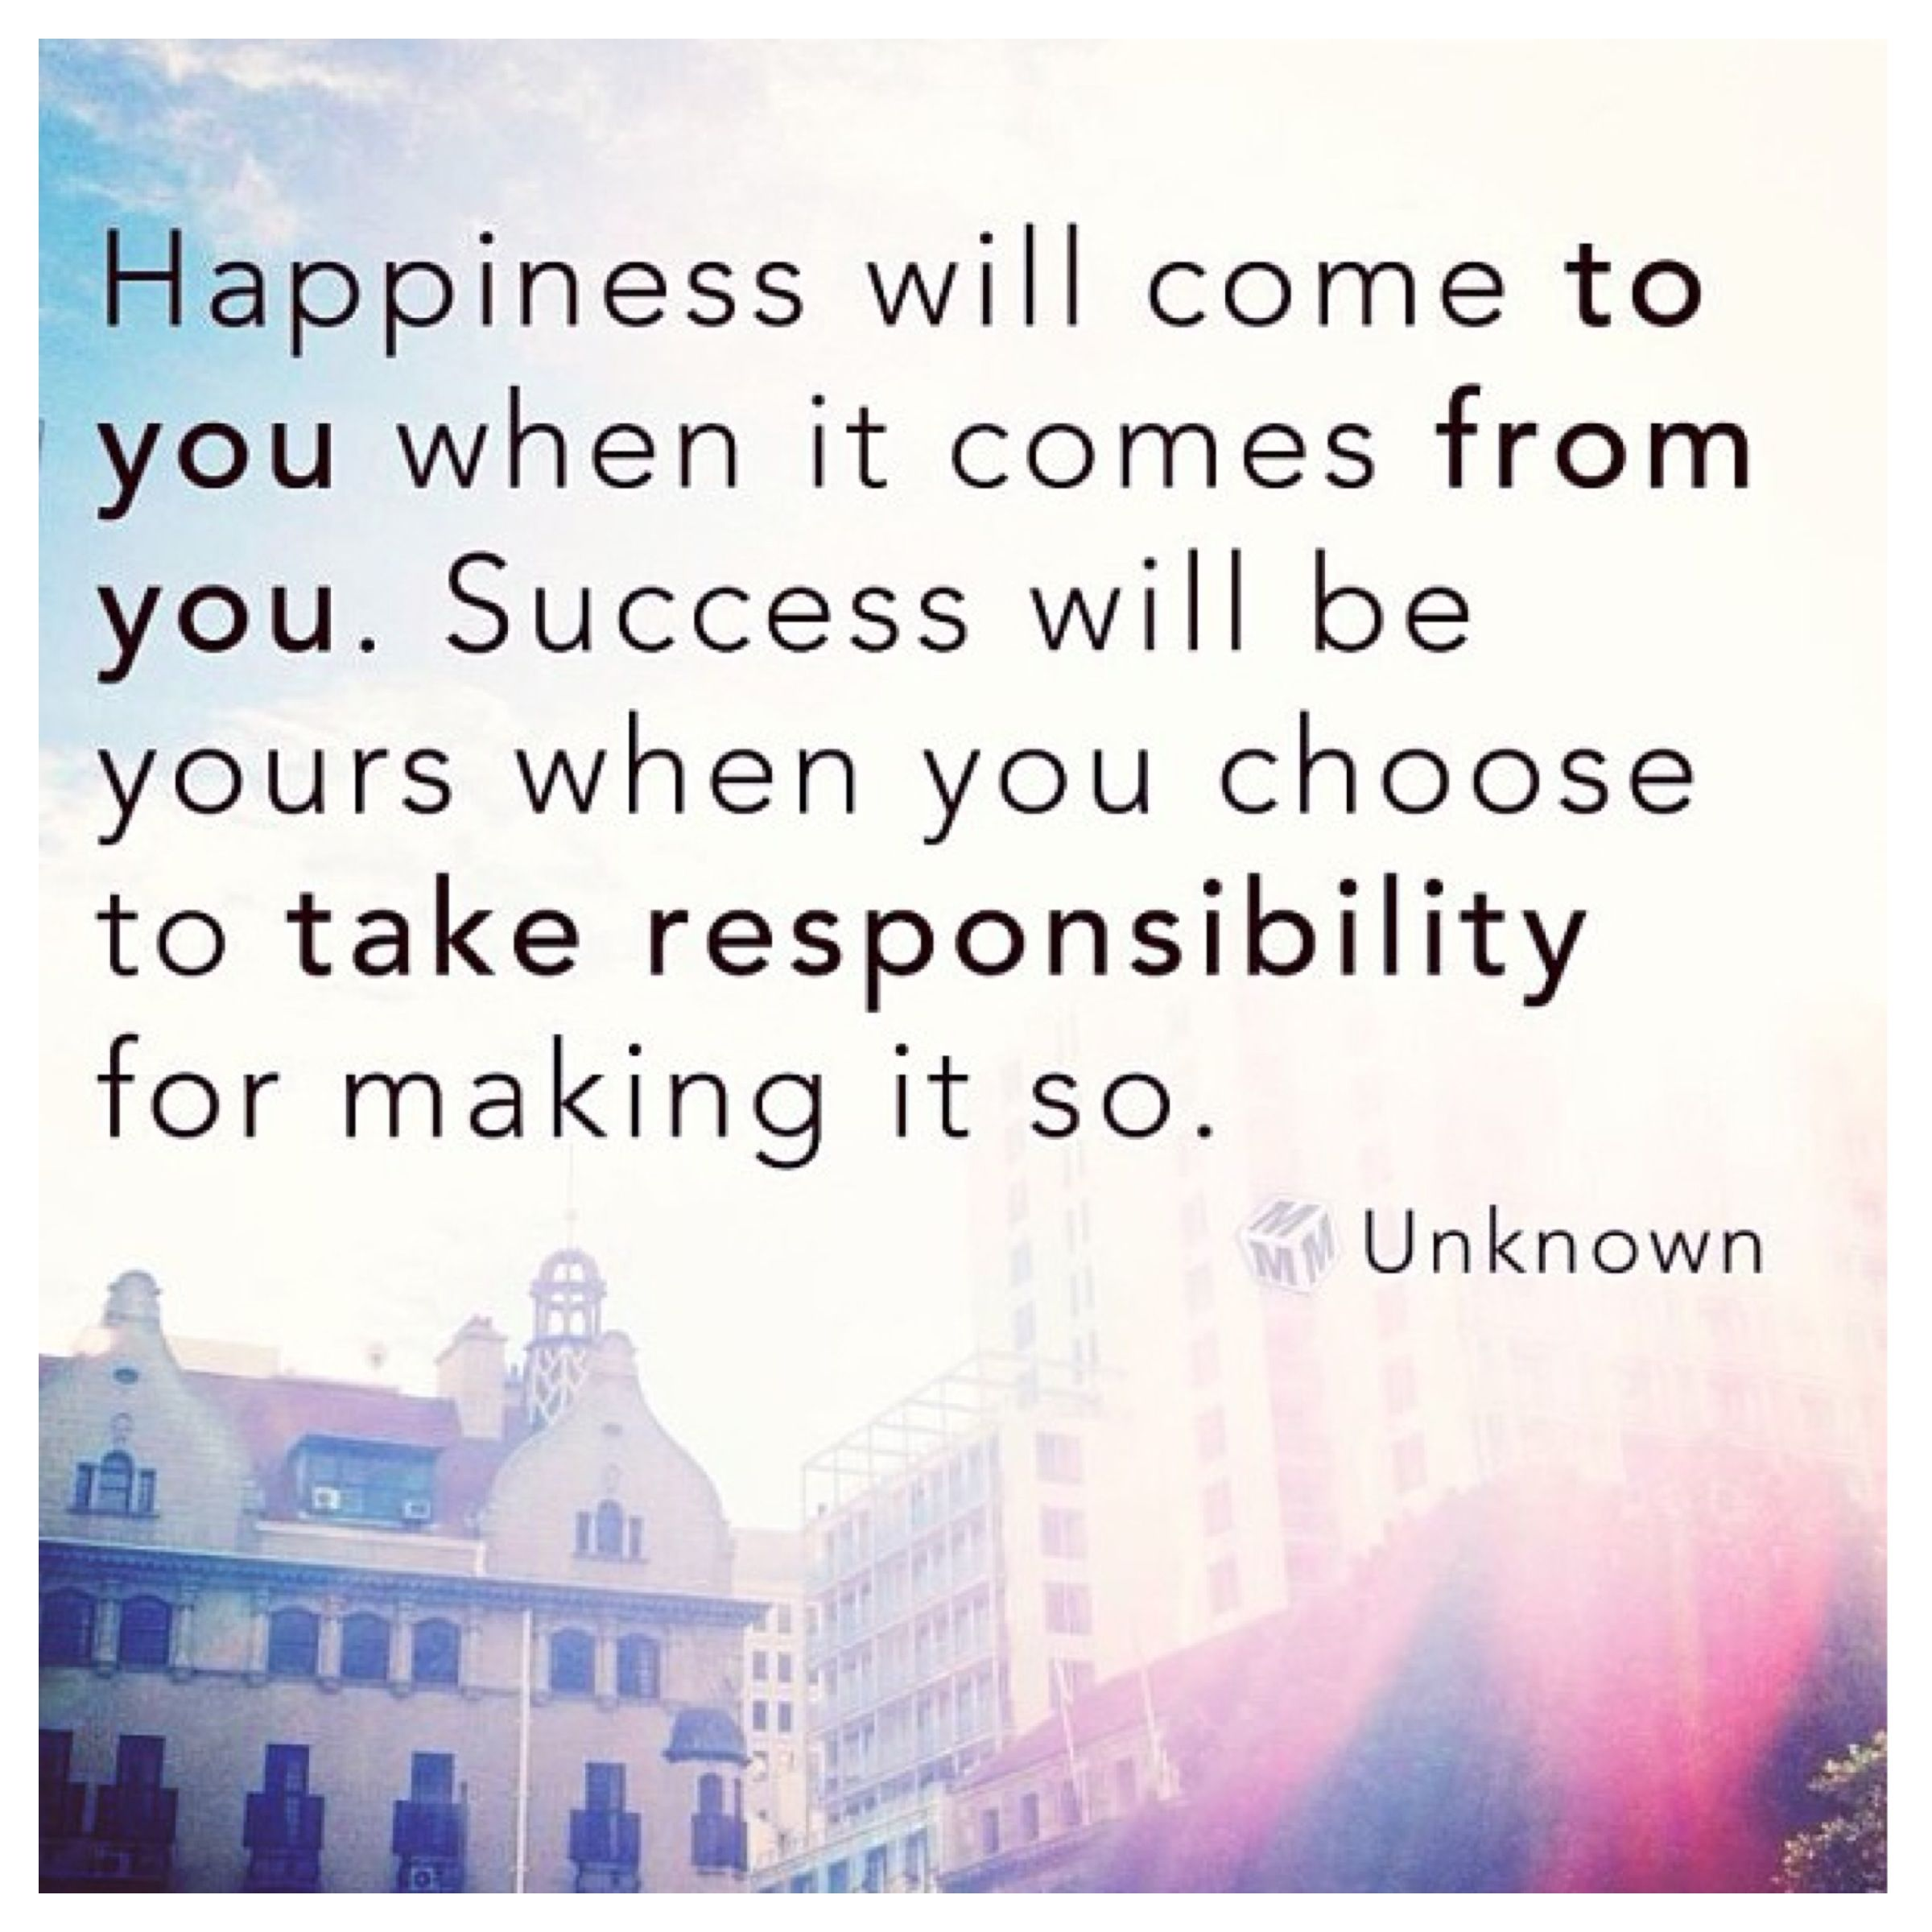 Quotes For Success And Happiness: *Happiness Will Come To You When It Comes From You